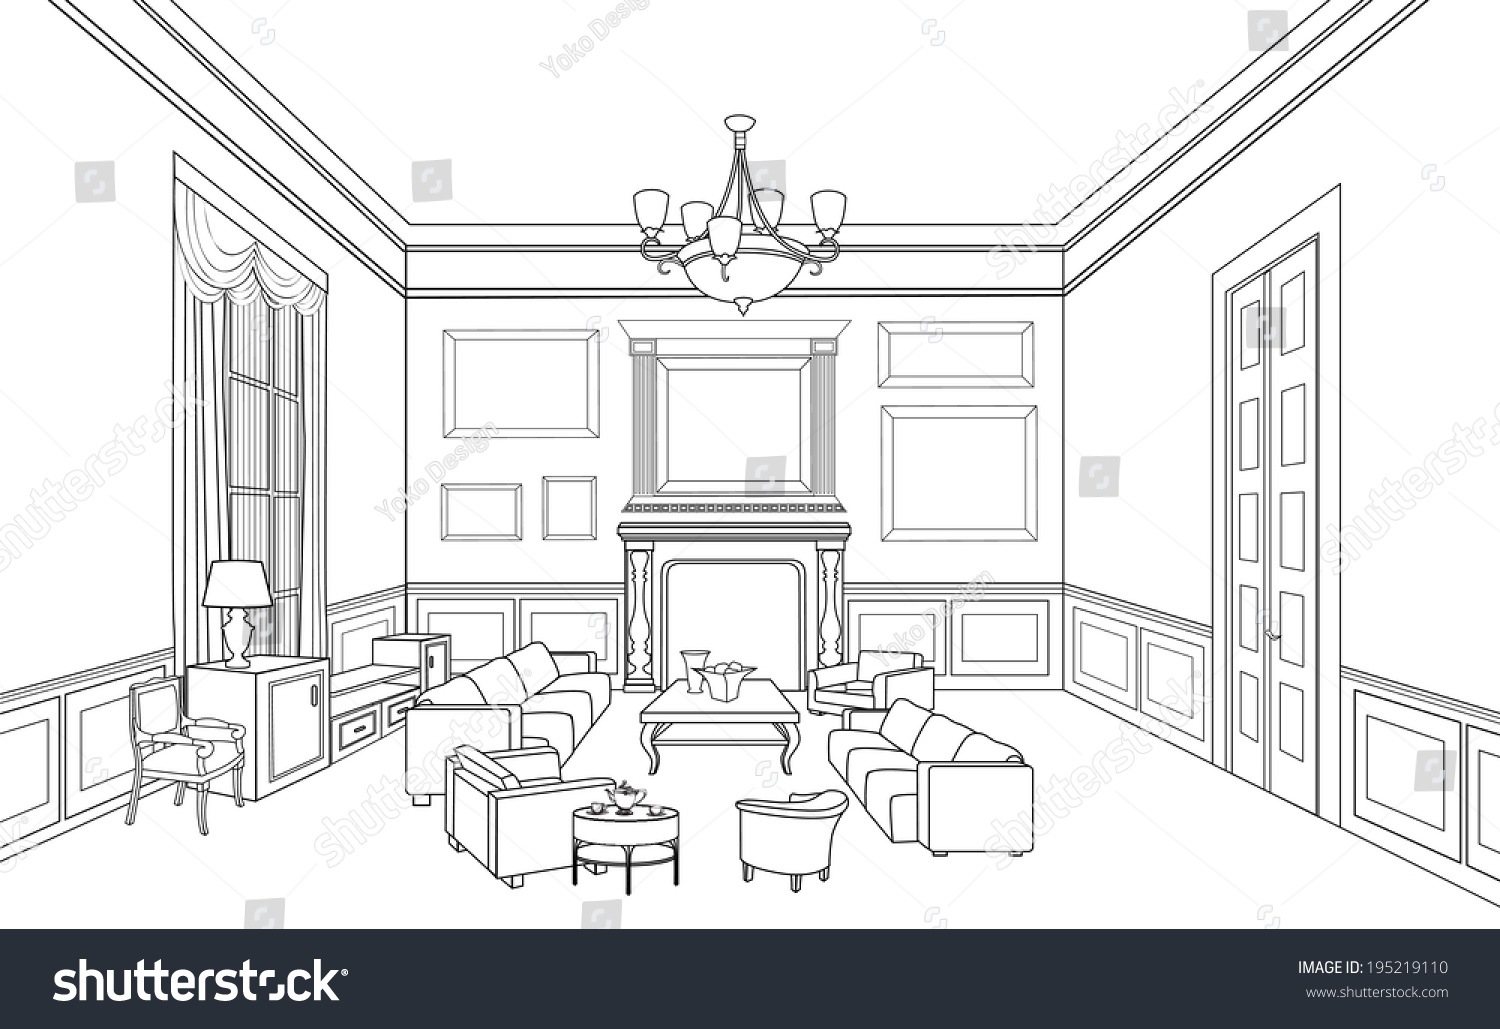 Drawingroom Editable Vector Illustration Outline Sketch Stock